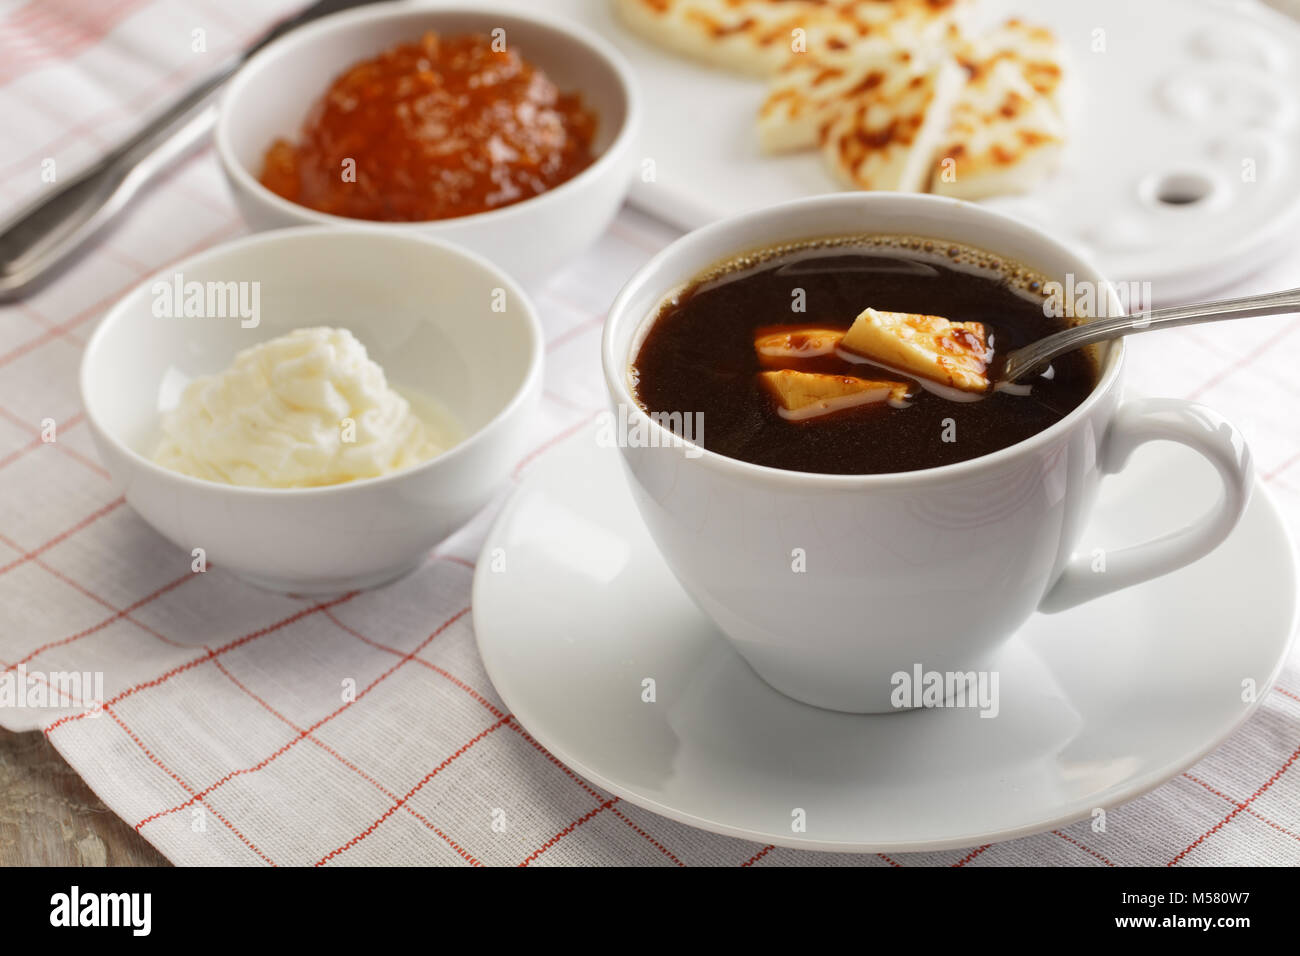 Swedish breakfast with mini farmer cheeses, cloudberry jam, whipped cream, and a cup of coffee - Stock Image